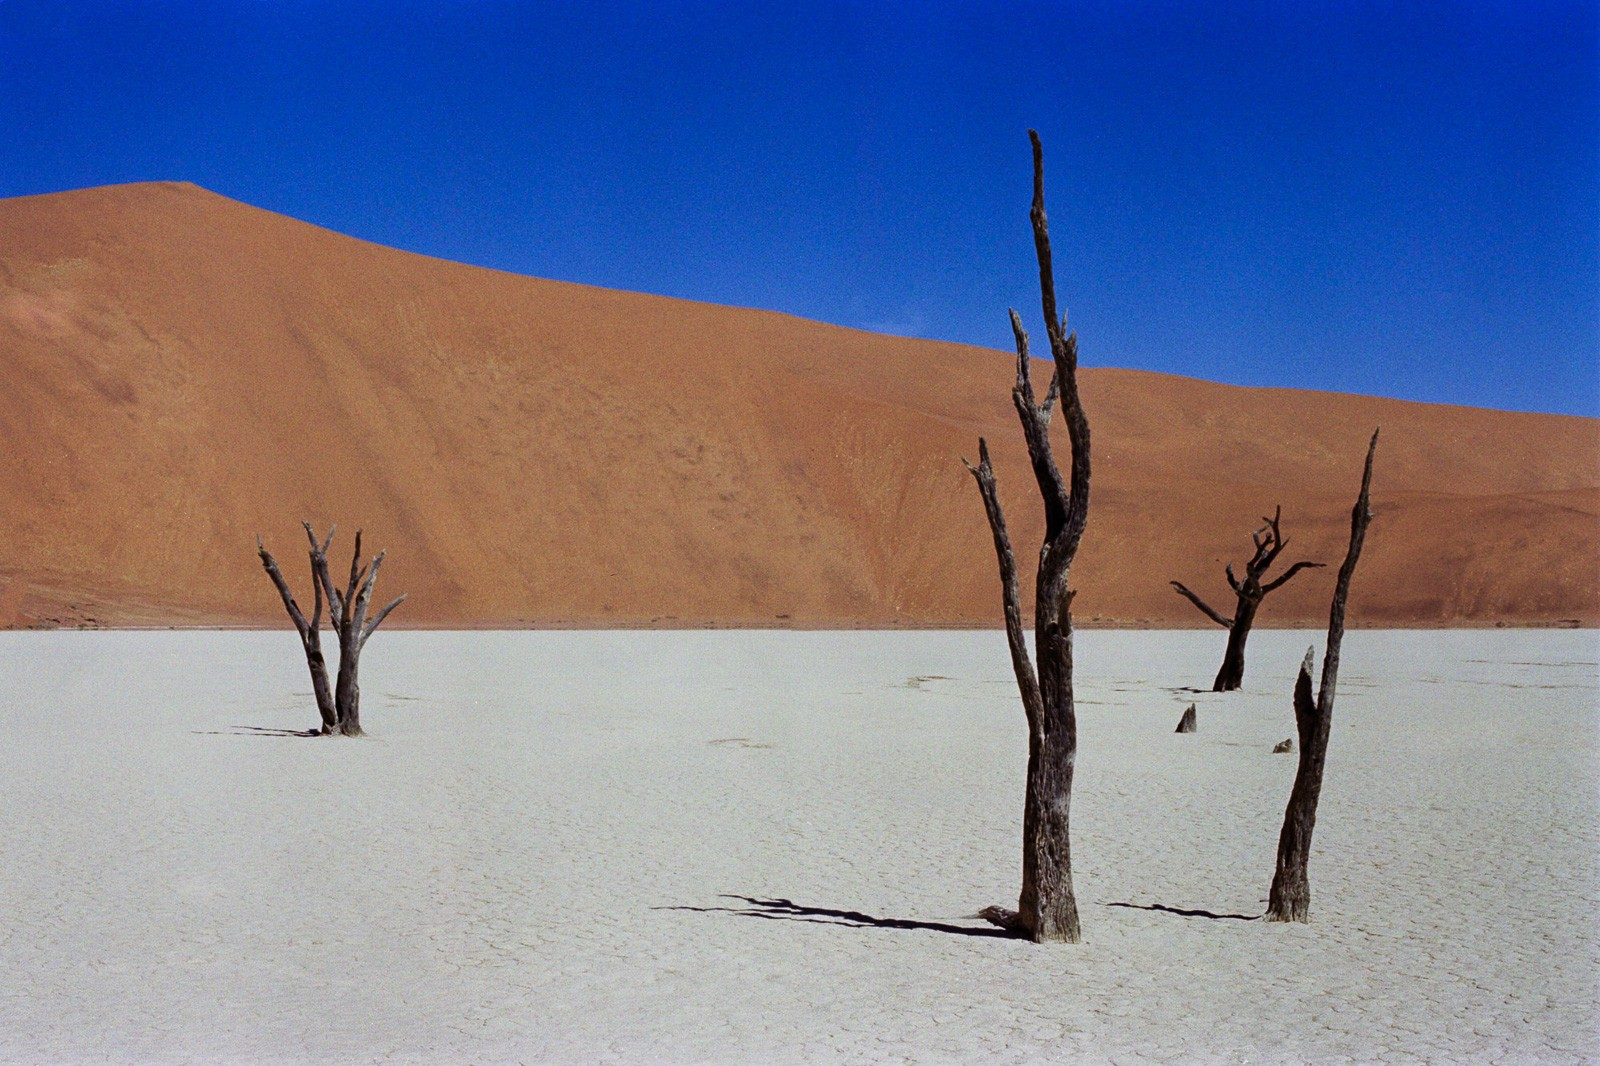 namibia desert scene in deadvlei dead trees in salt pan